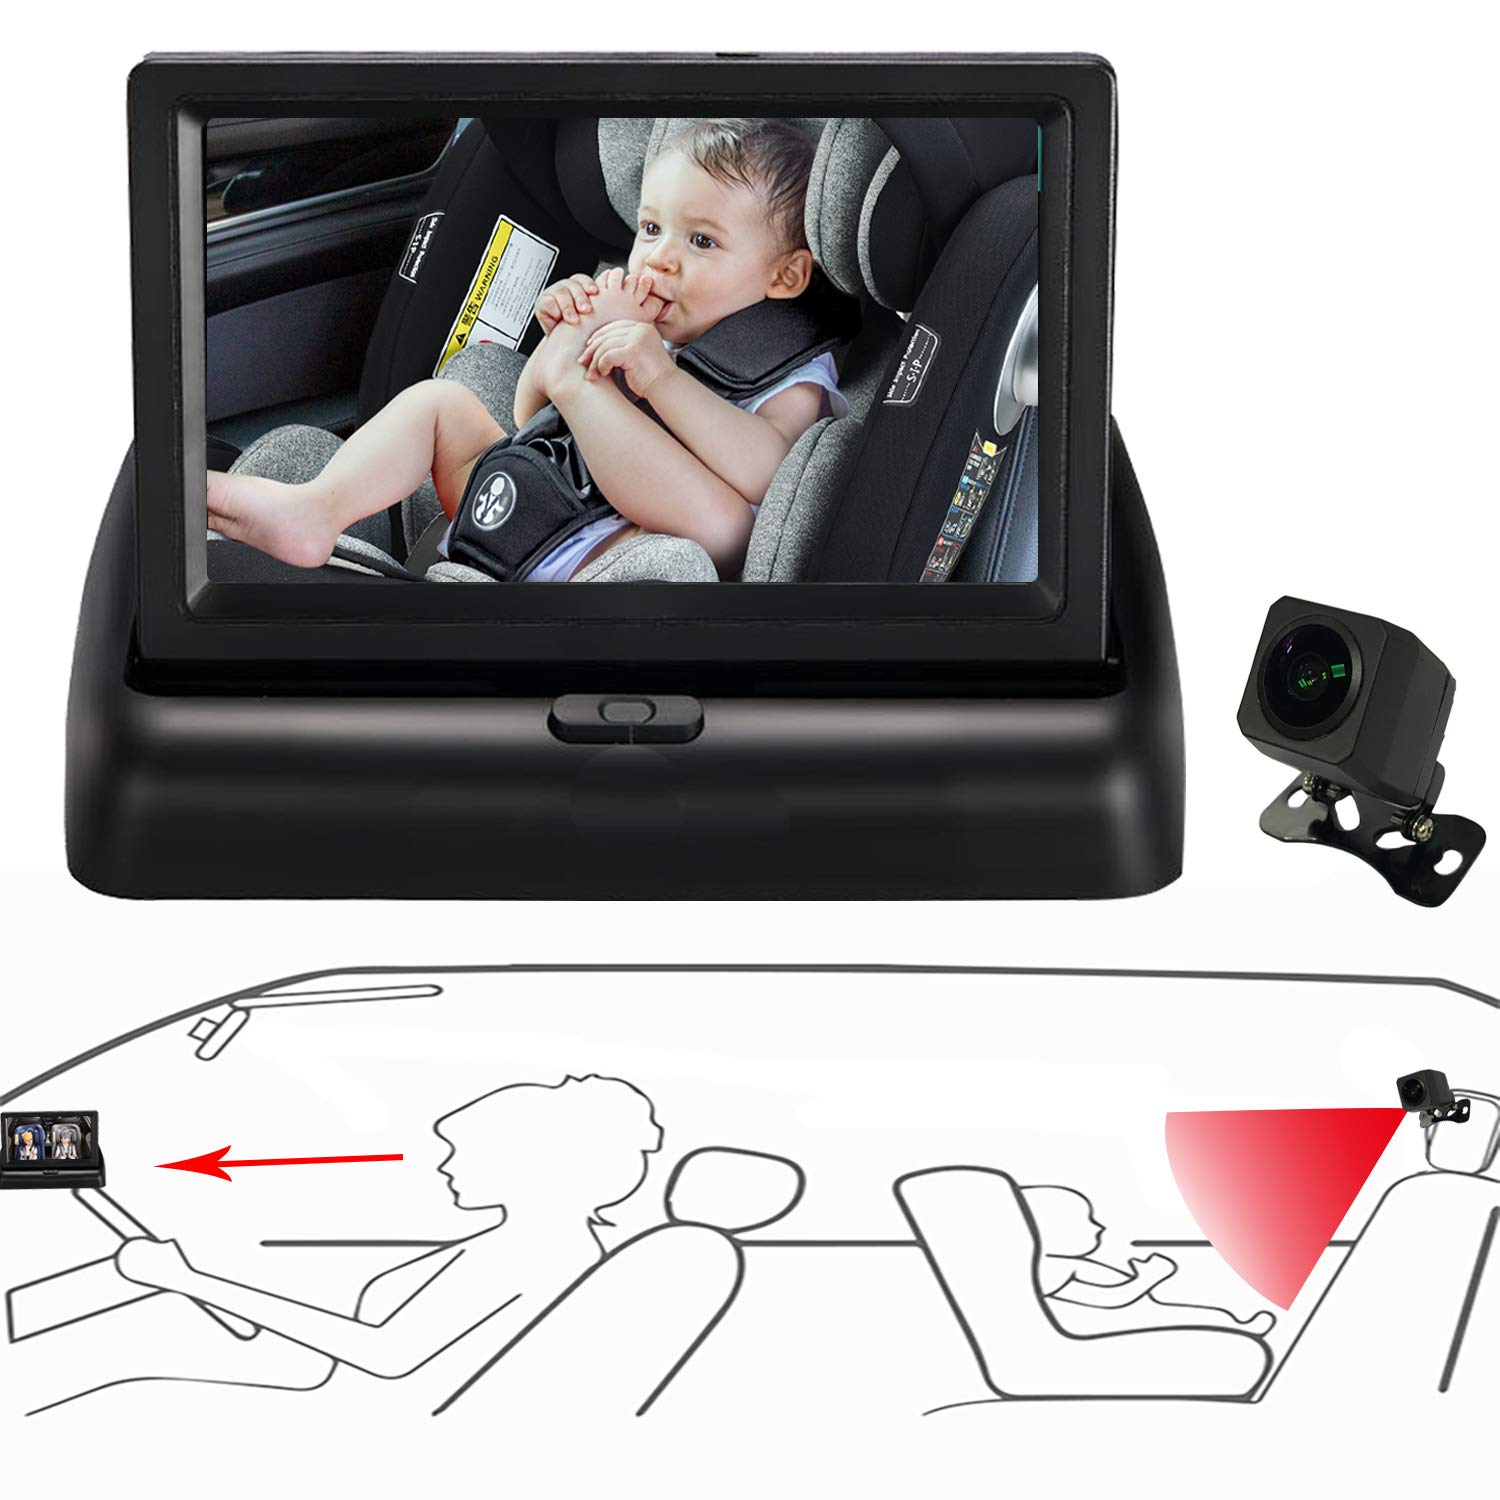 Itomoro Baby Car Mirror, View Infant in Rear Facing Seat with Wide Crystal Clear View,Night Vision,Camera Aimed at Baby-Easily to Observe The Baby's Every Move by Itomoro